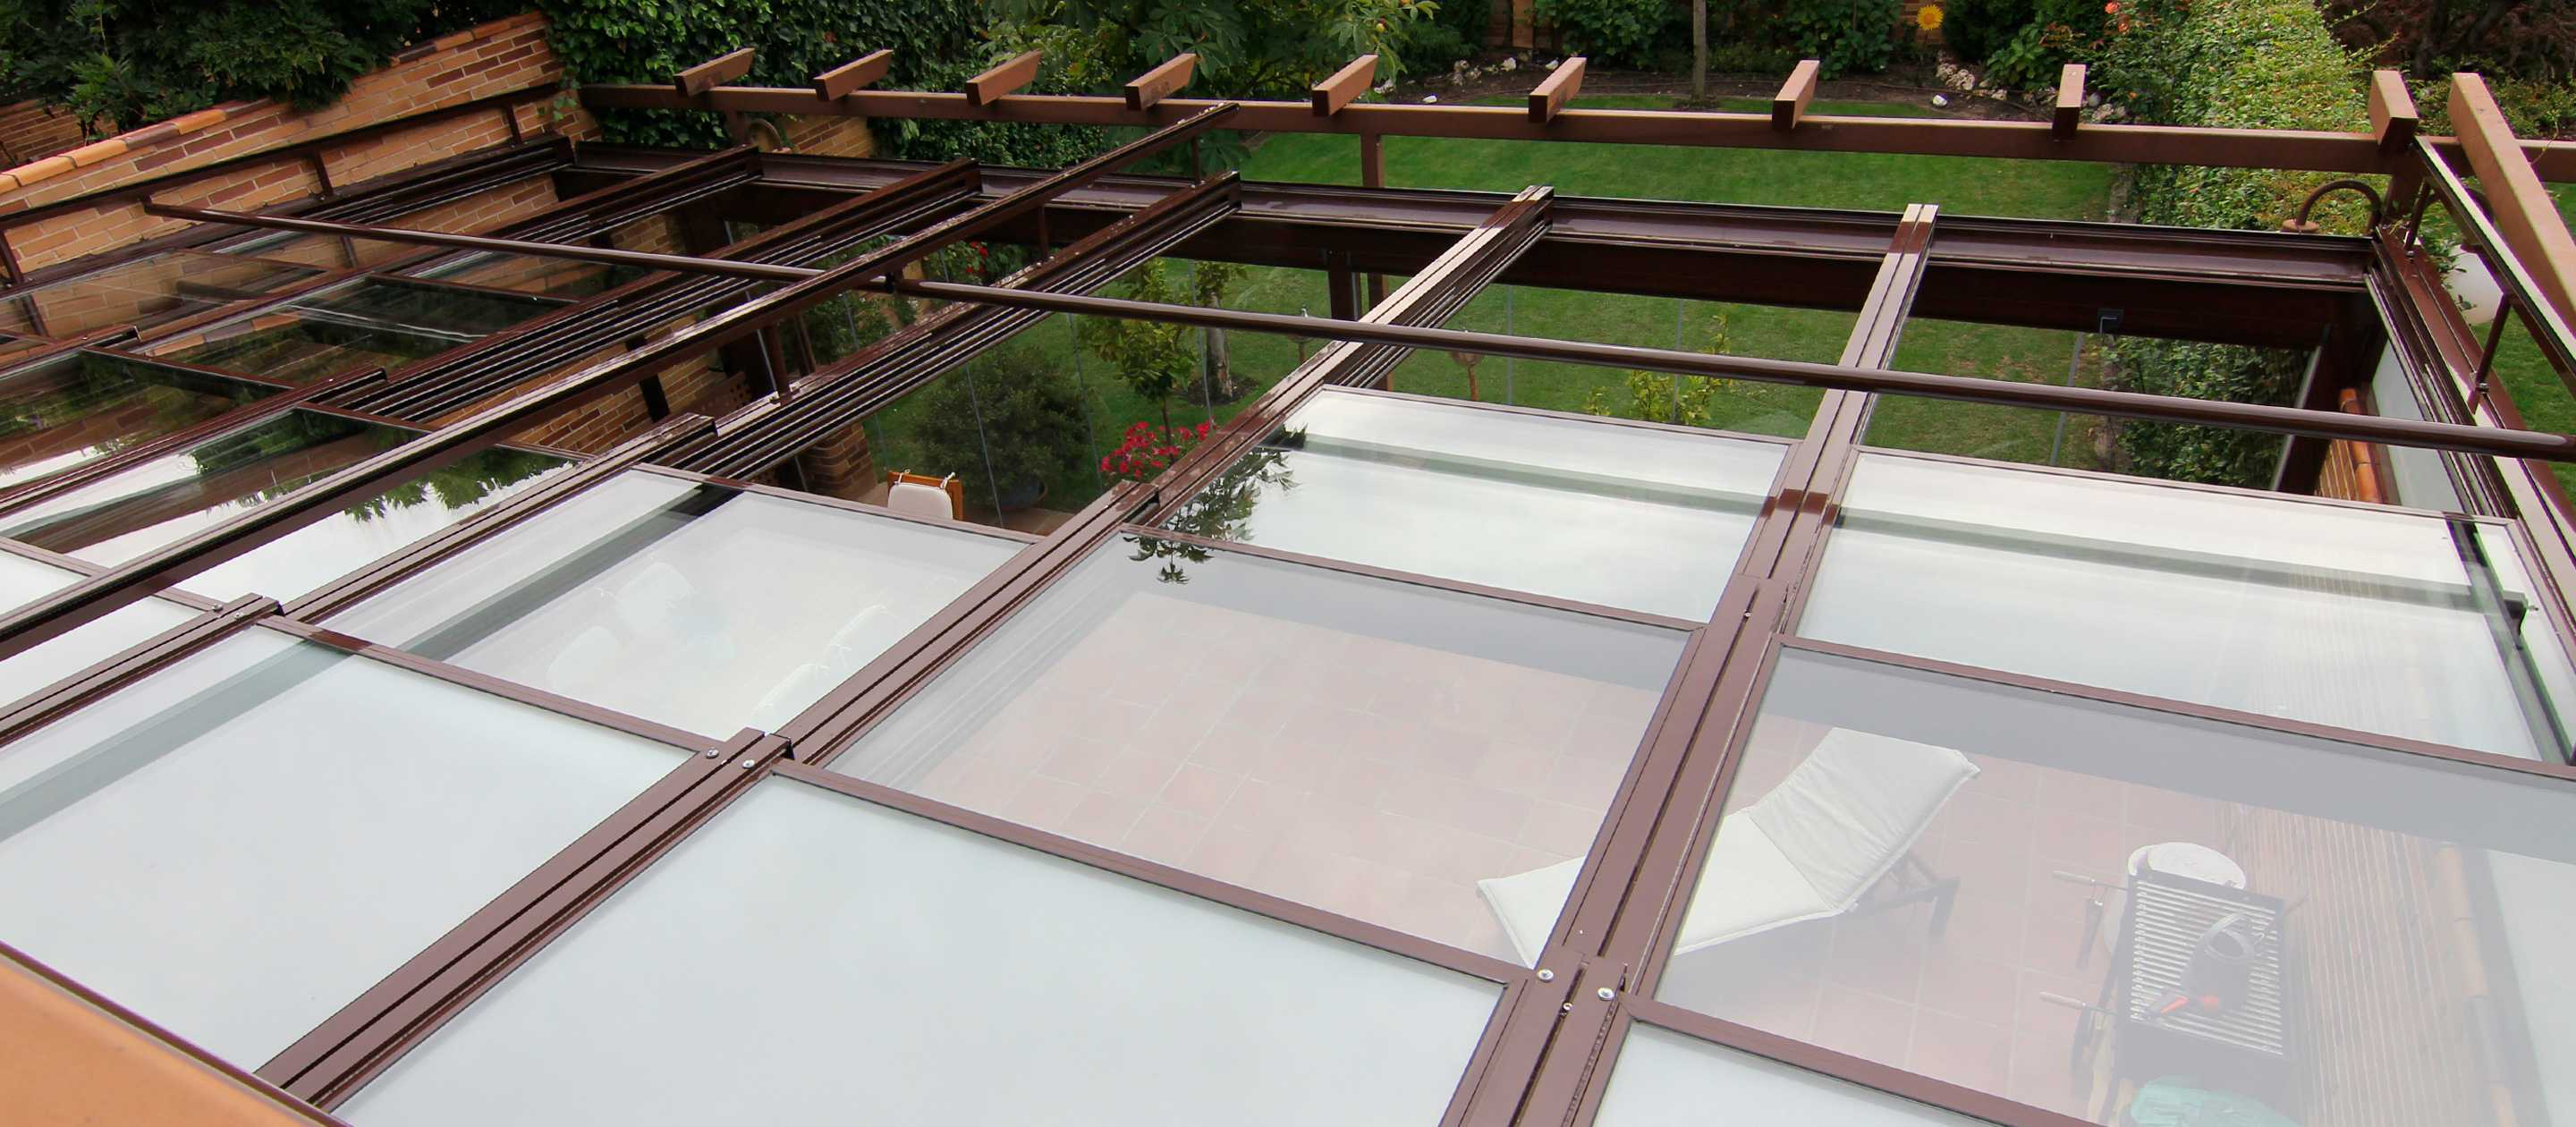 Lumpn glass roof